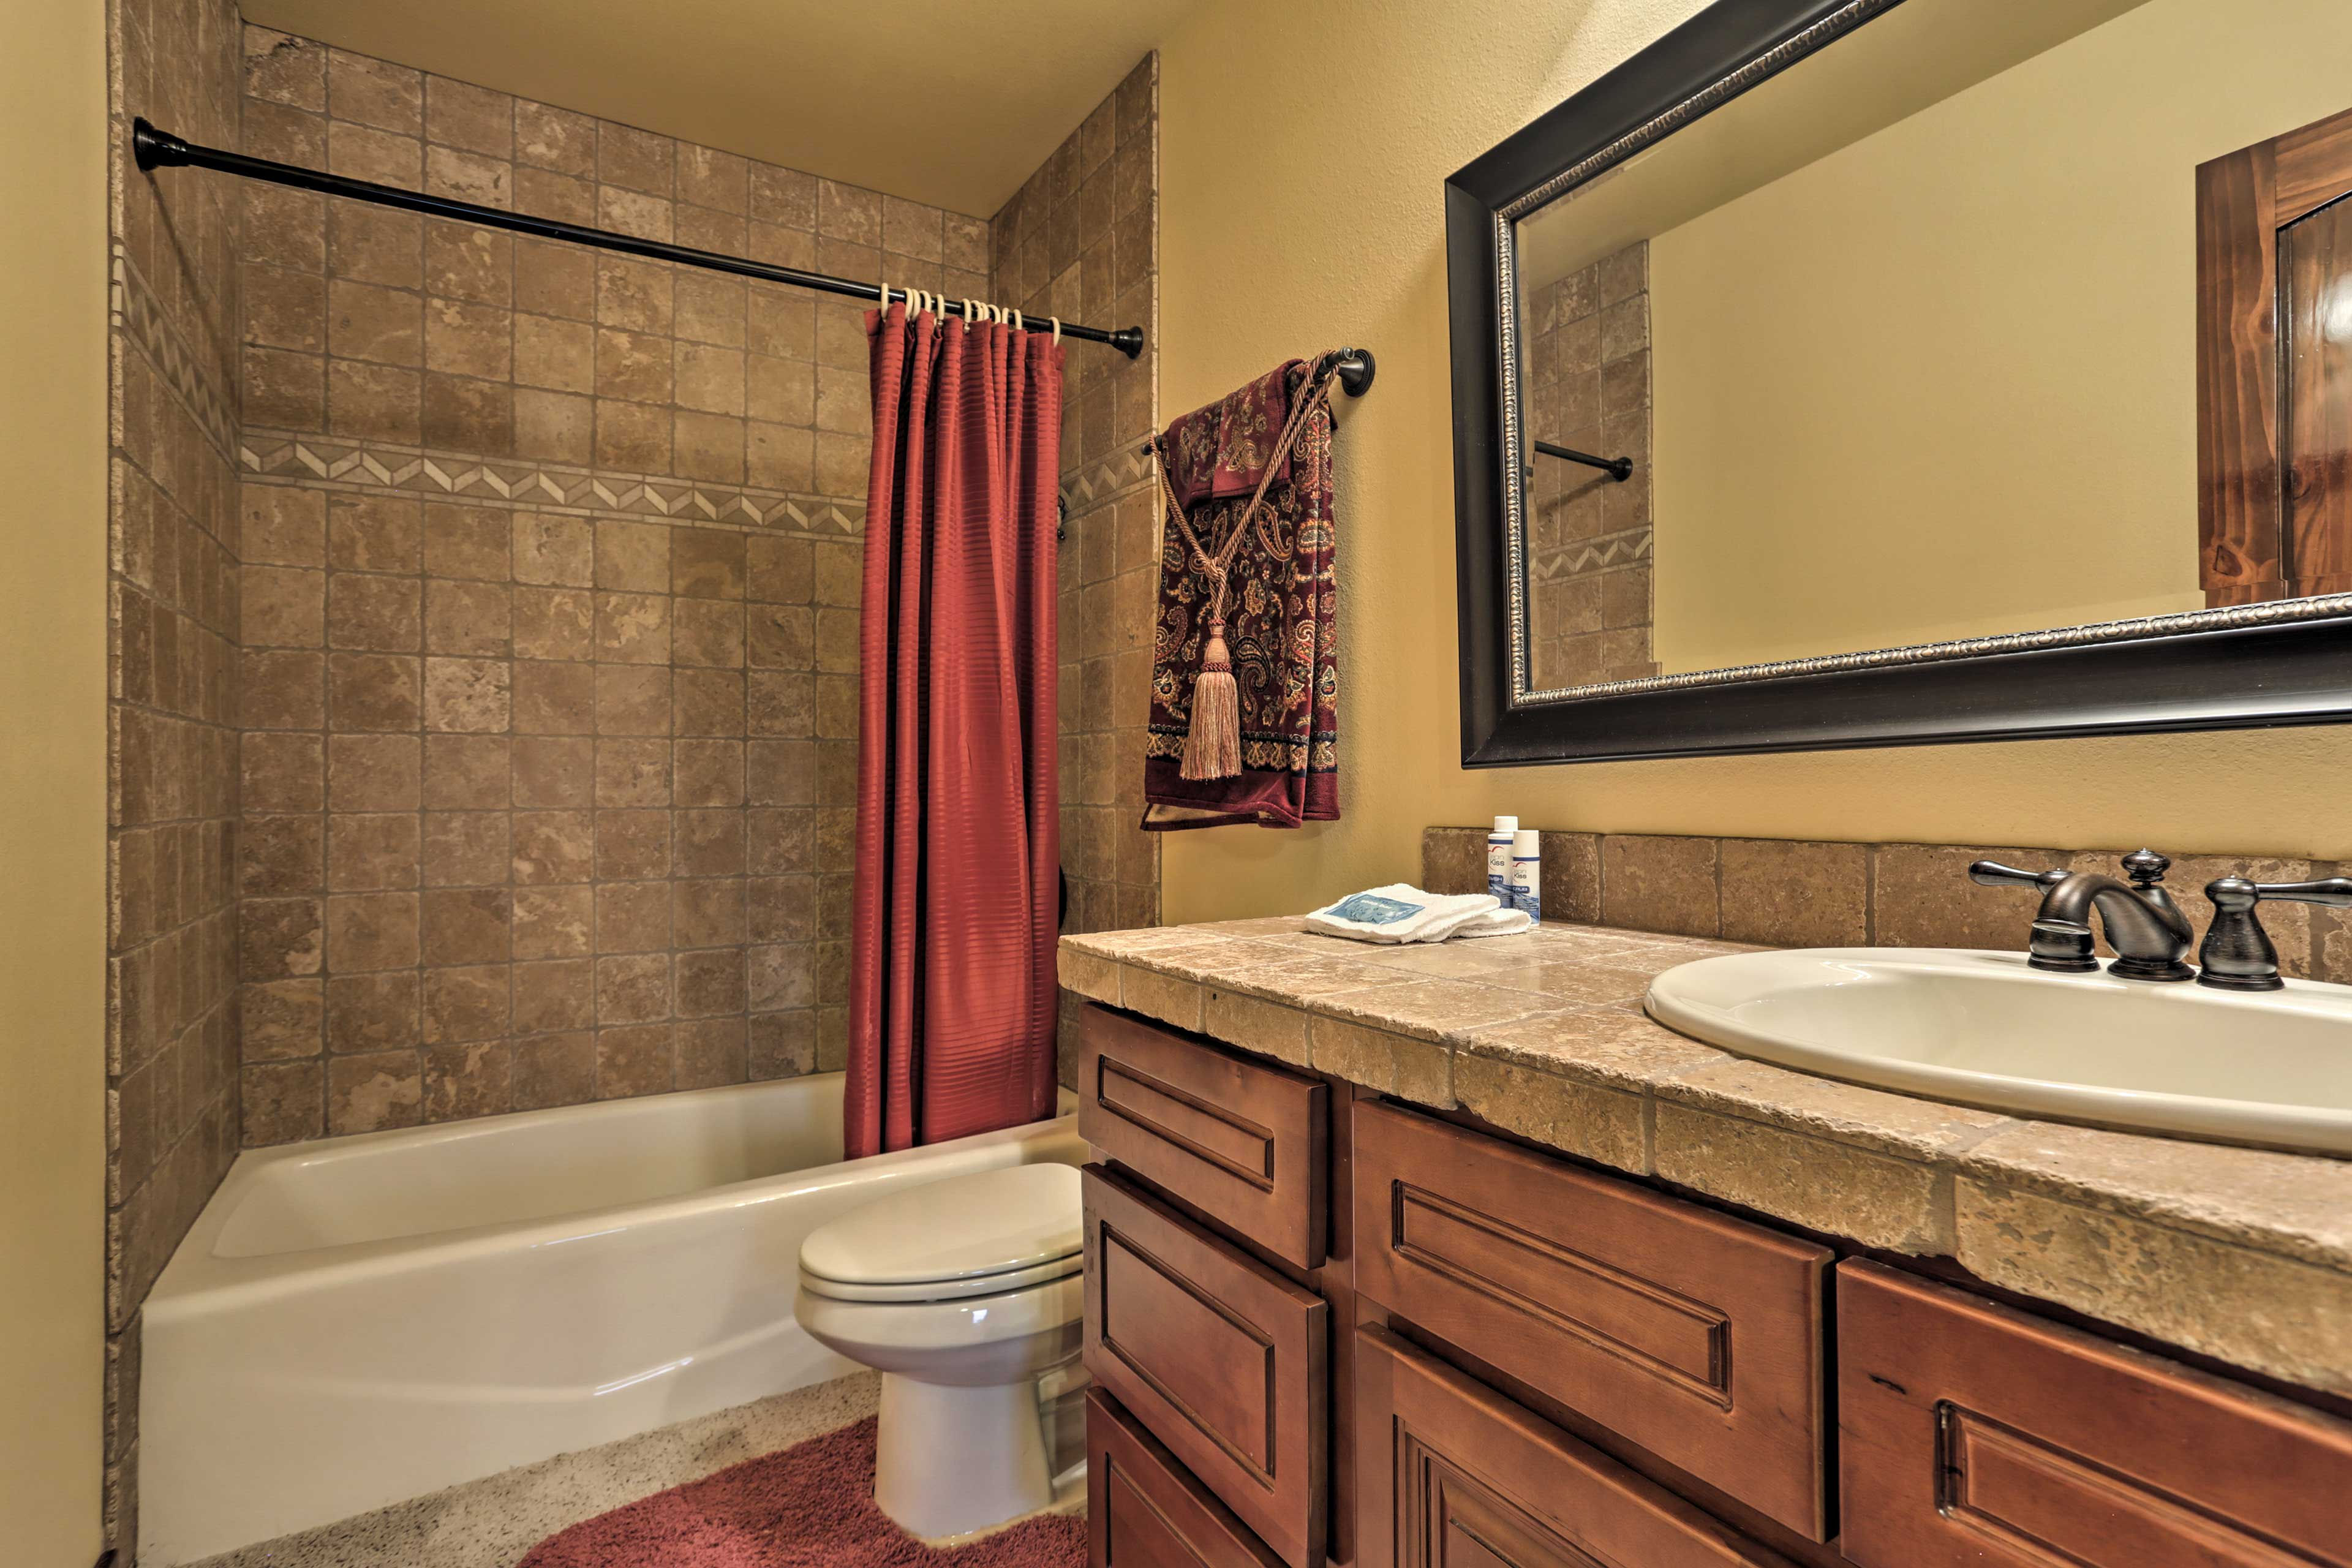 The 2 full bathrooms are stocked with complimentary toiletries and fresh towels.